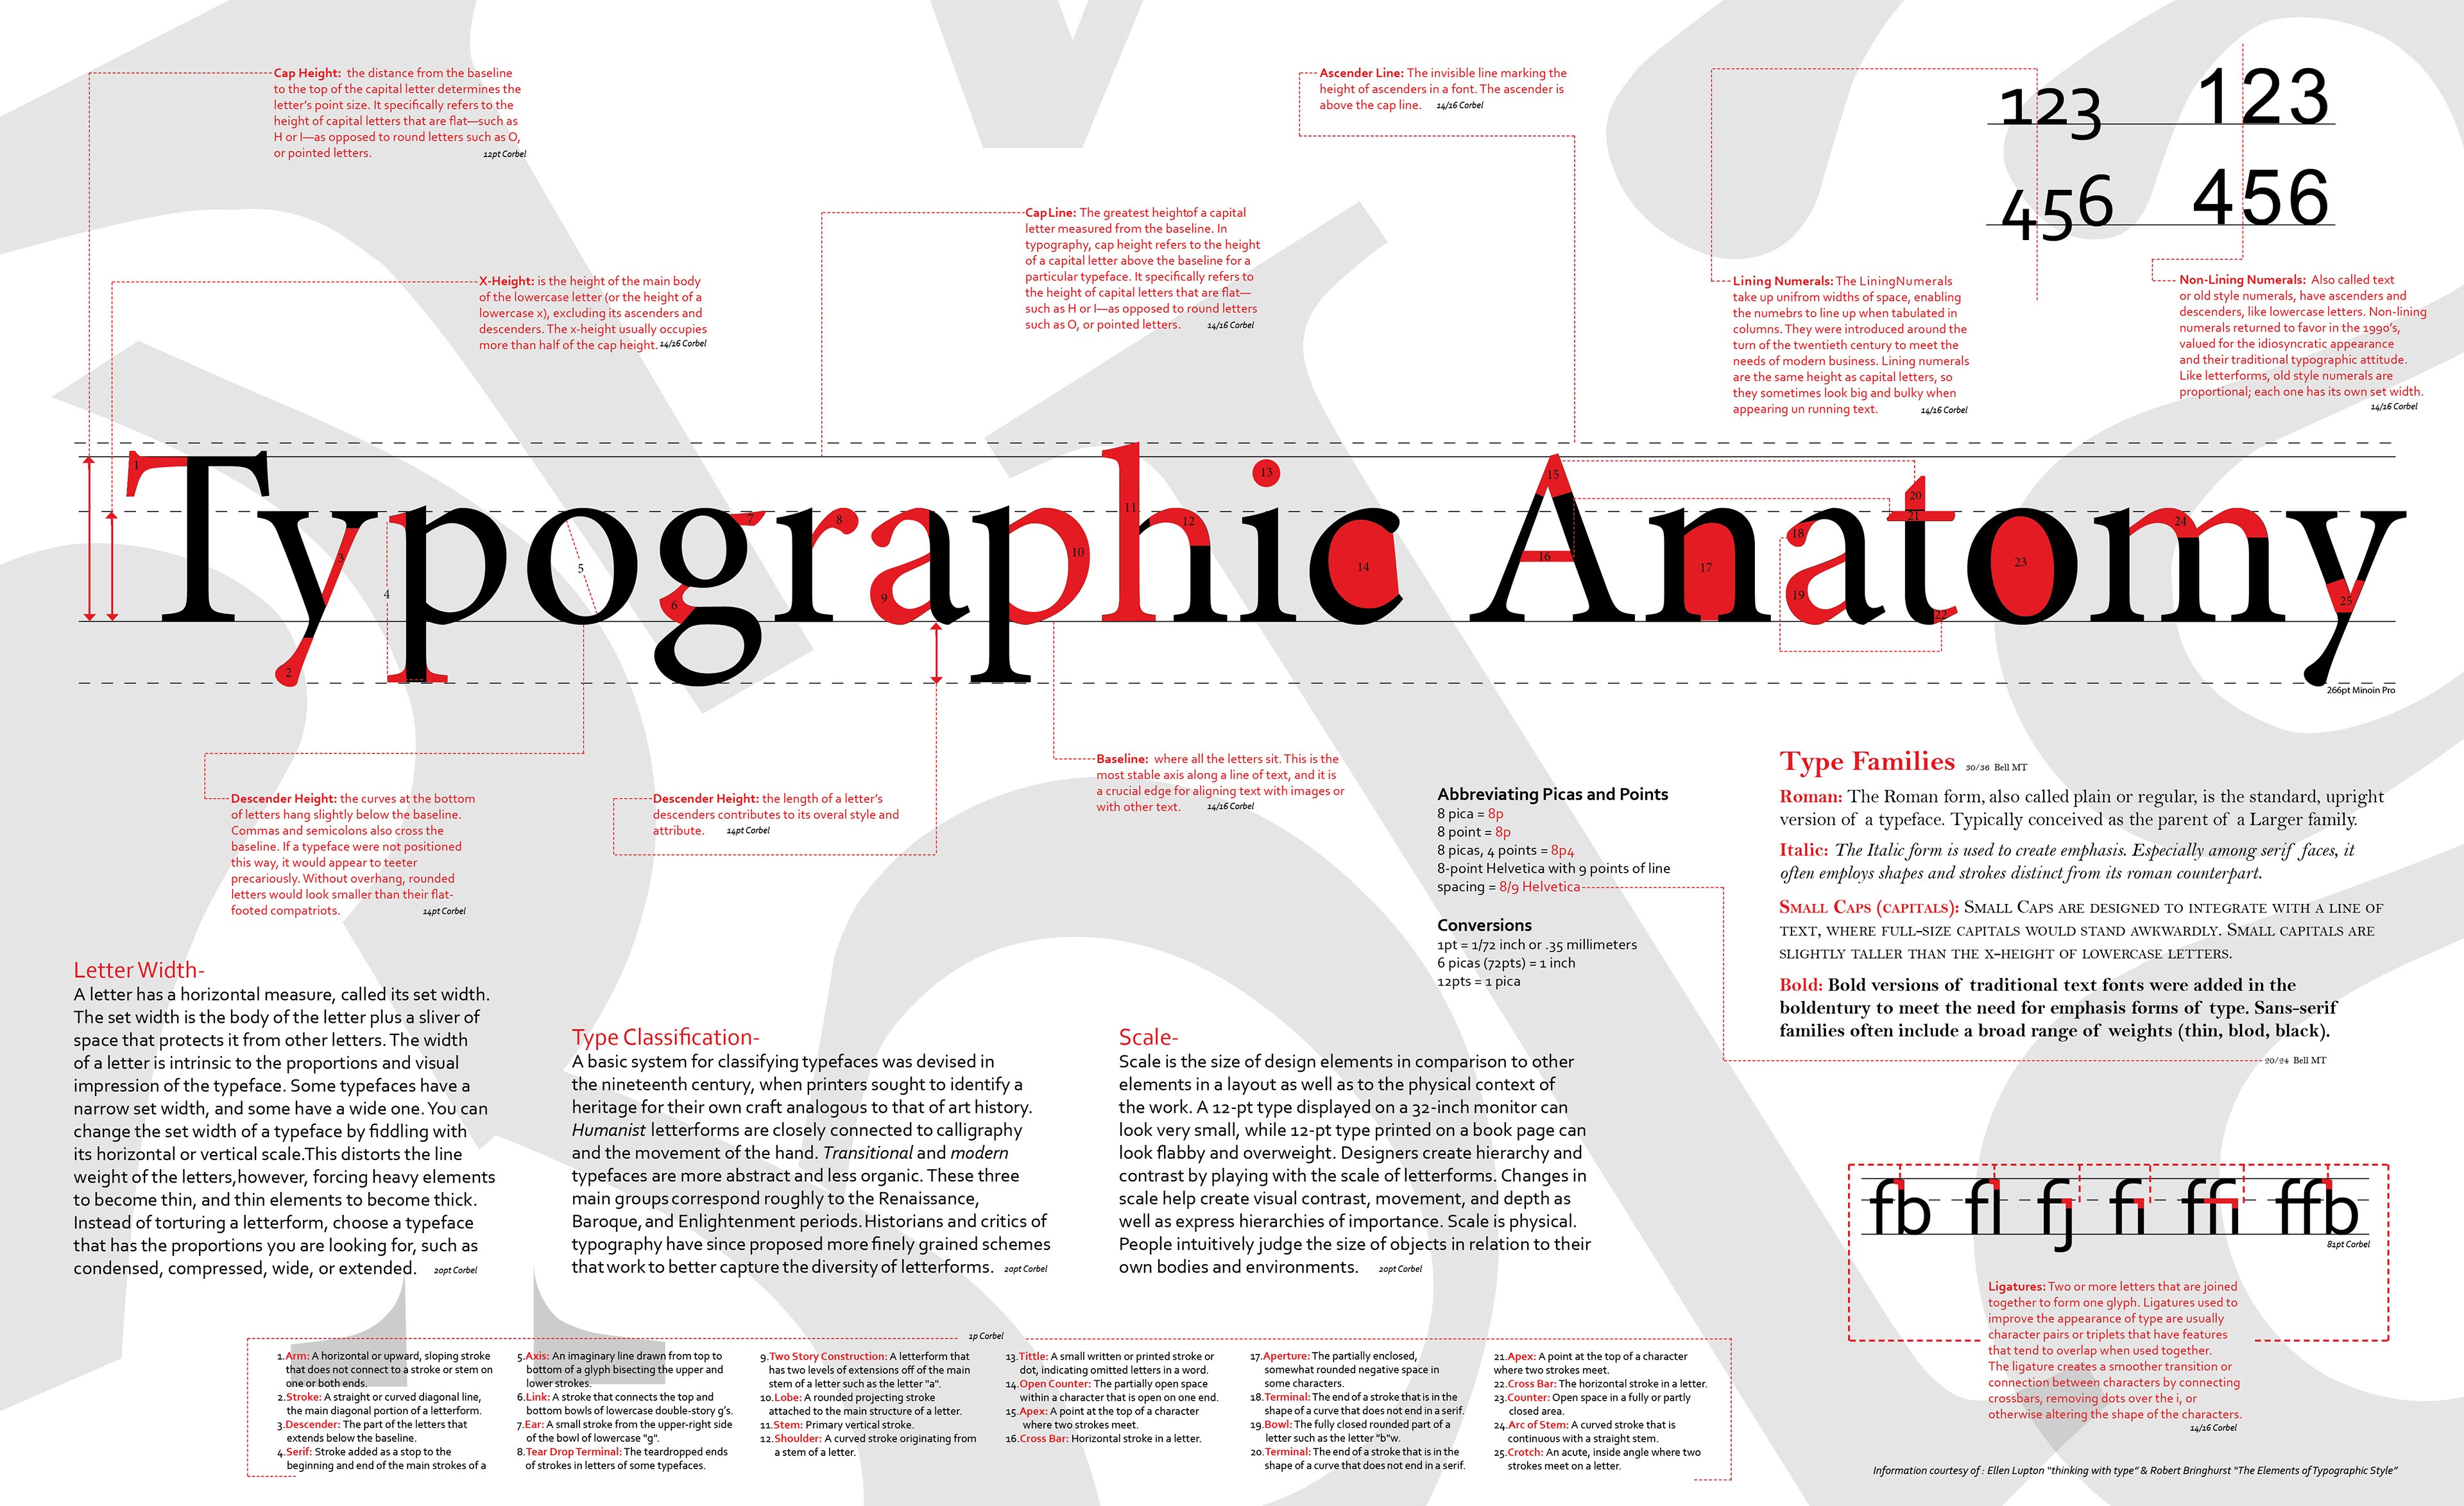 Typographic Anatomy Poster Information Courtesy Of Ellen Luptin In Thinking With Type And Robert Bringhurst The Elements Style